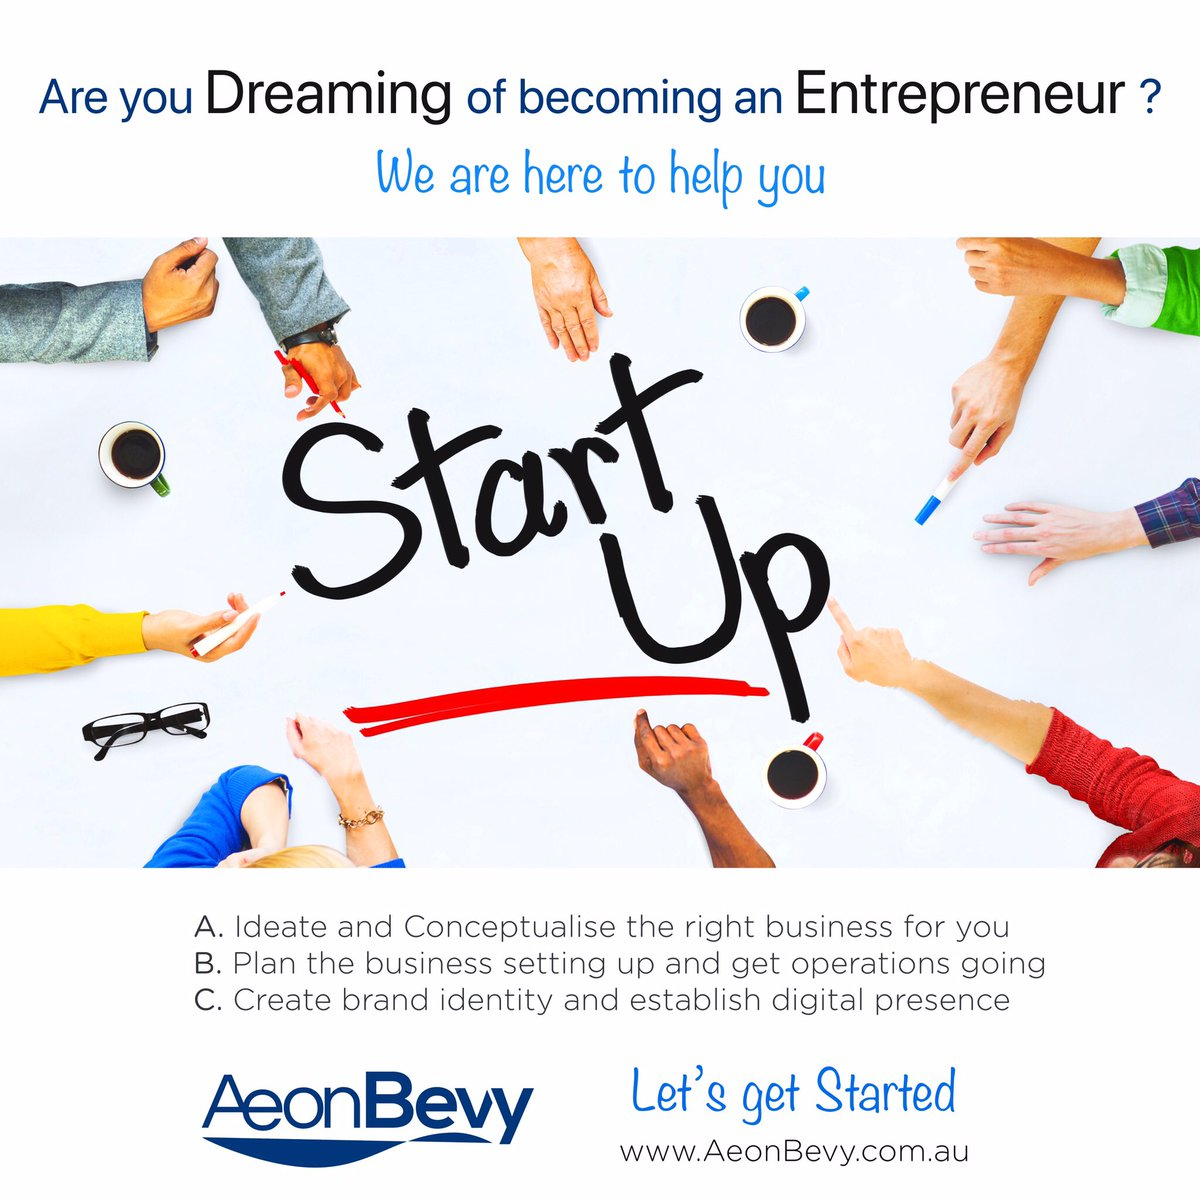 #Entrepreneurship is a #dream, #vision, goal, must-do, can-do, need-to-do... @AeonBevy #AeonBevy  http://www.aeonbevy.com.au  #entrepreneur #entrepreneurlife #business #Mindset #Motivate #BeYourOwnBoss #Mentor #Believe #Coaching #mentoring #businessowner #letsdothis #startup #follow